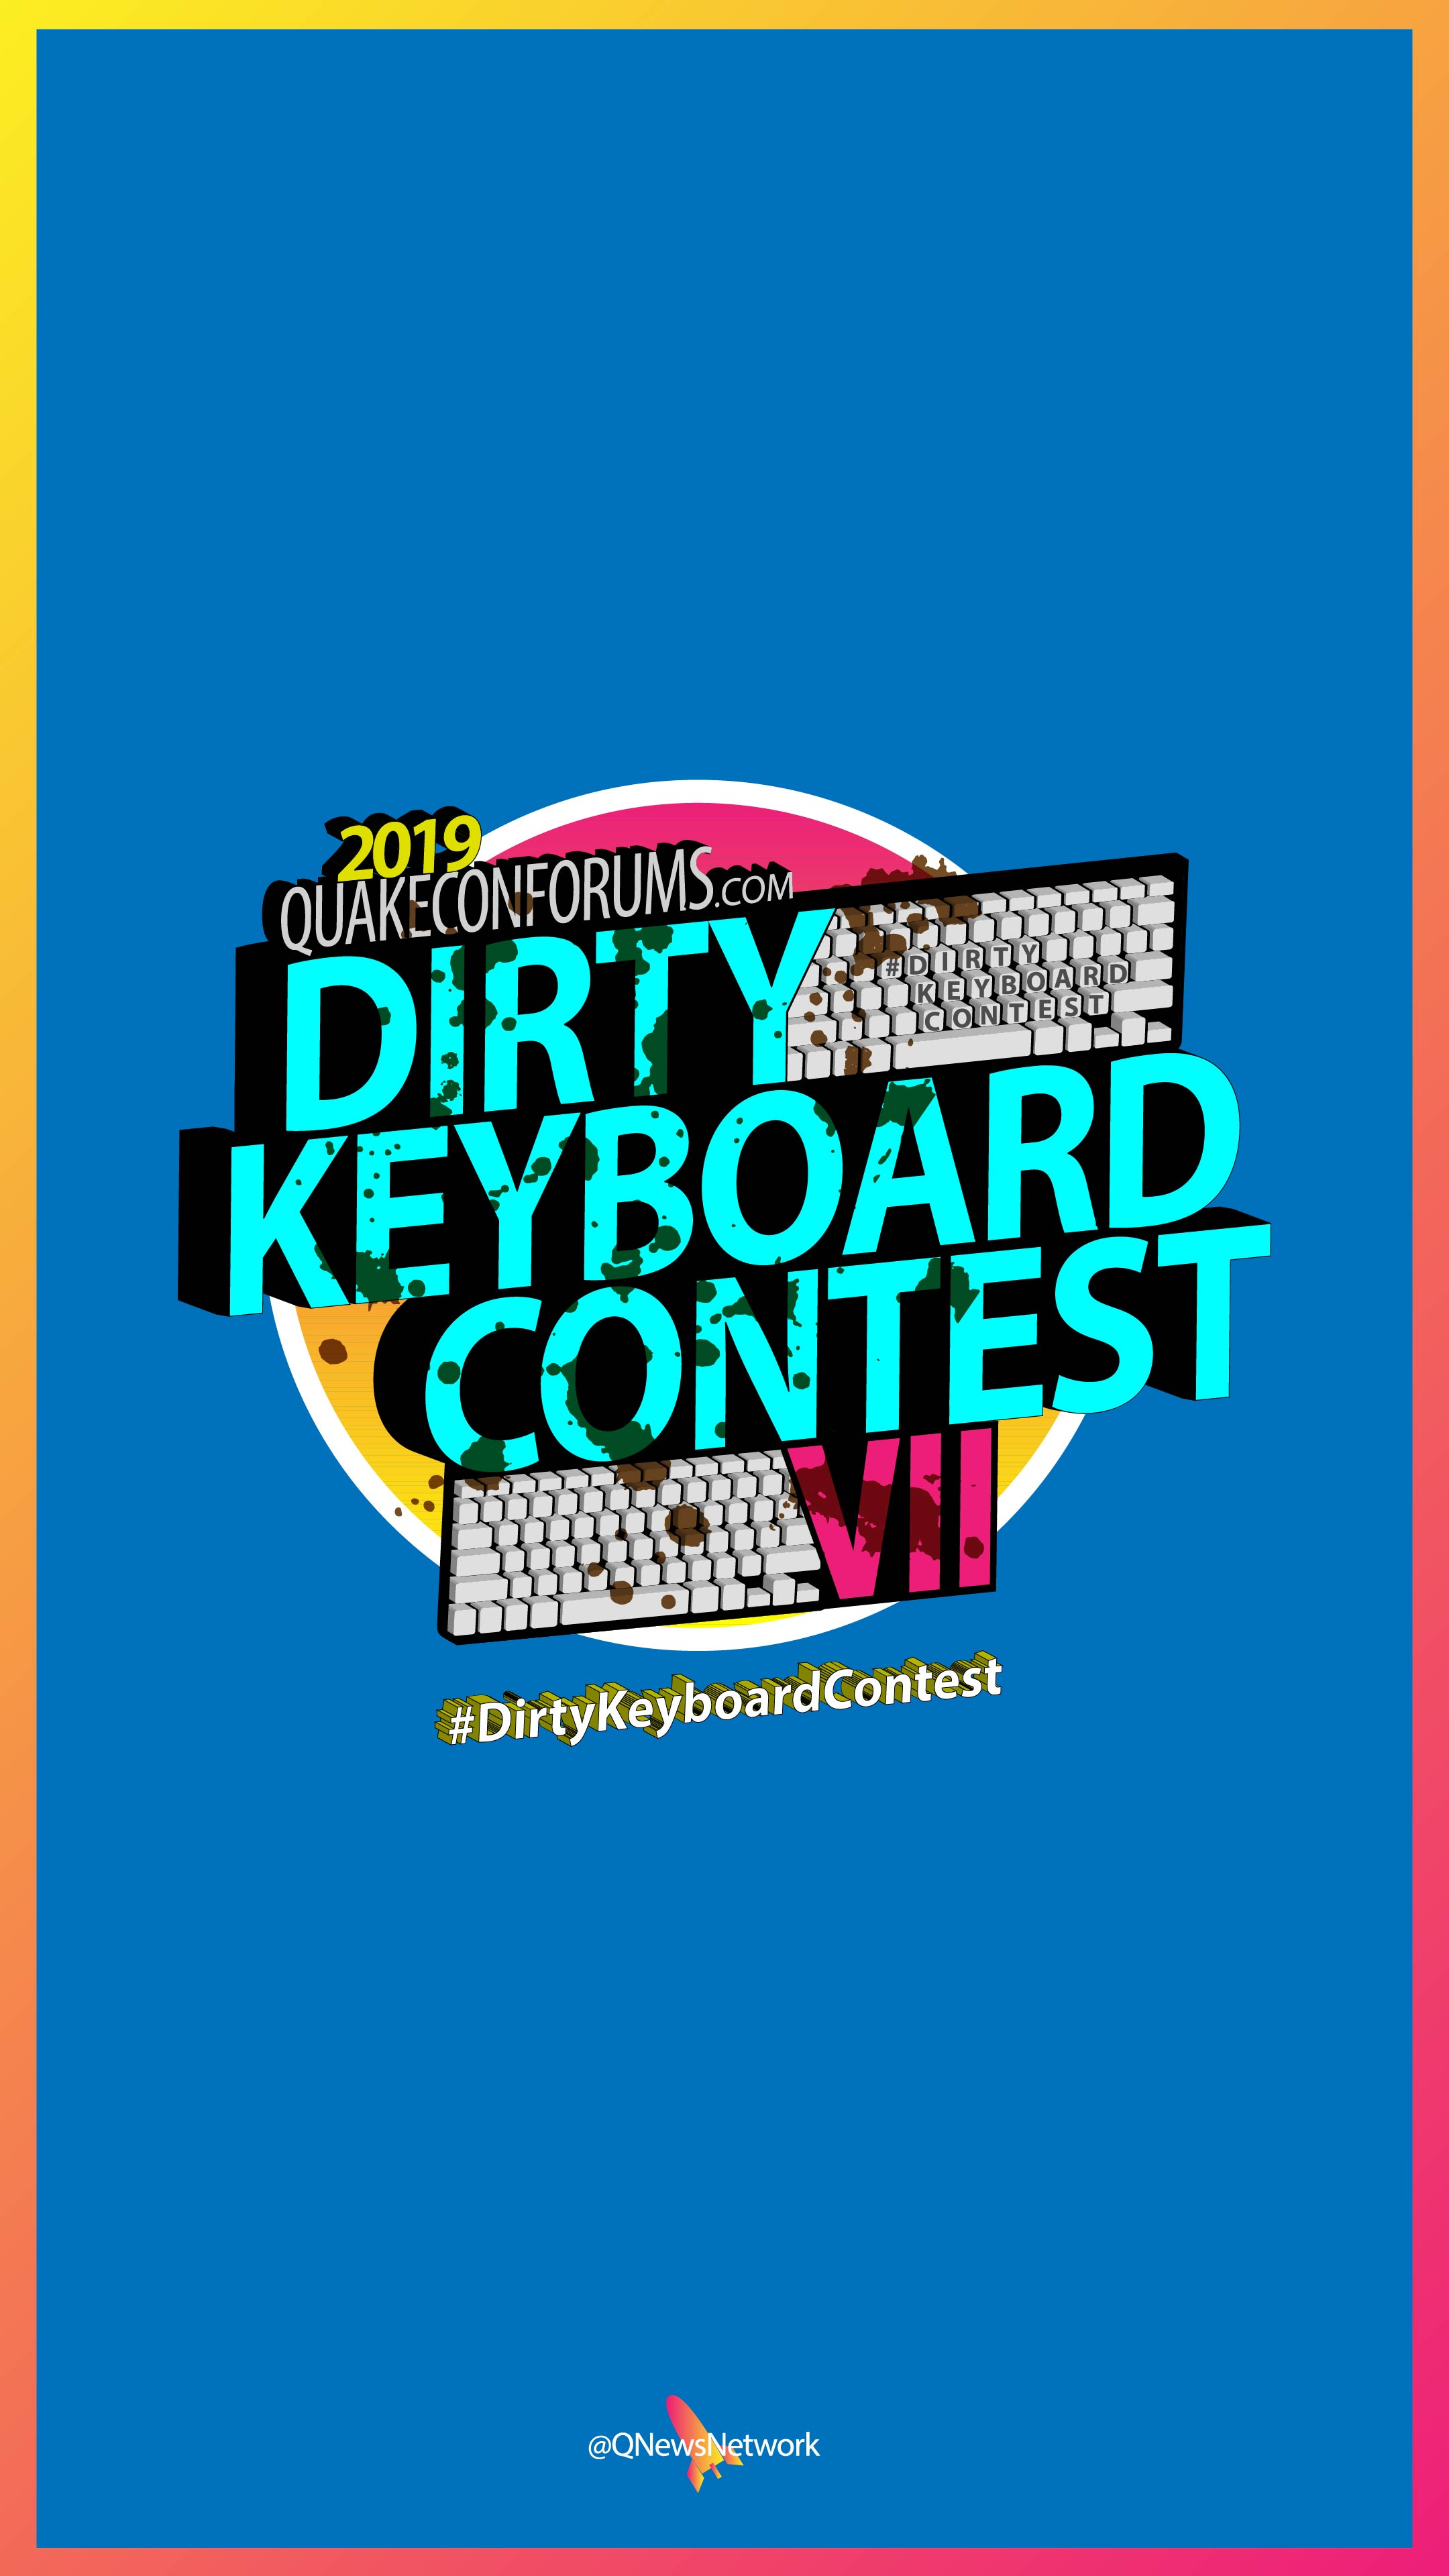 2019 Dirty Keyboard Contest Wallpaper Q News Network